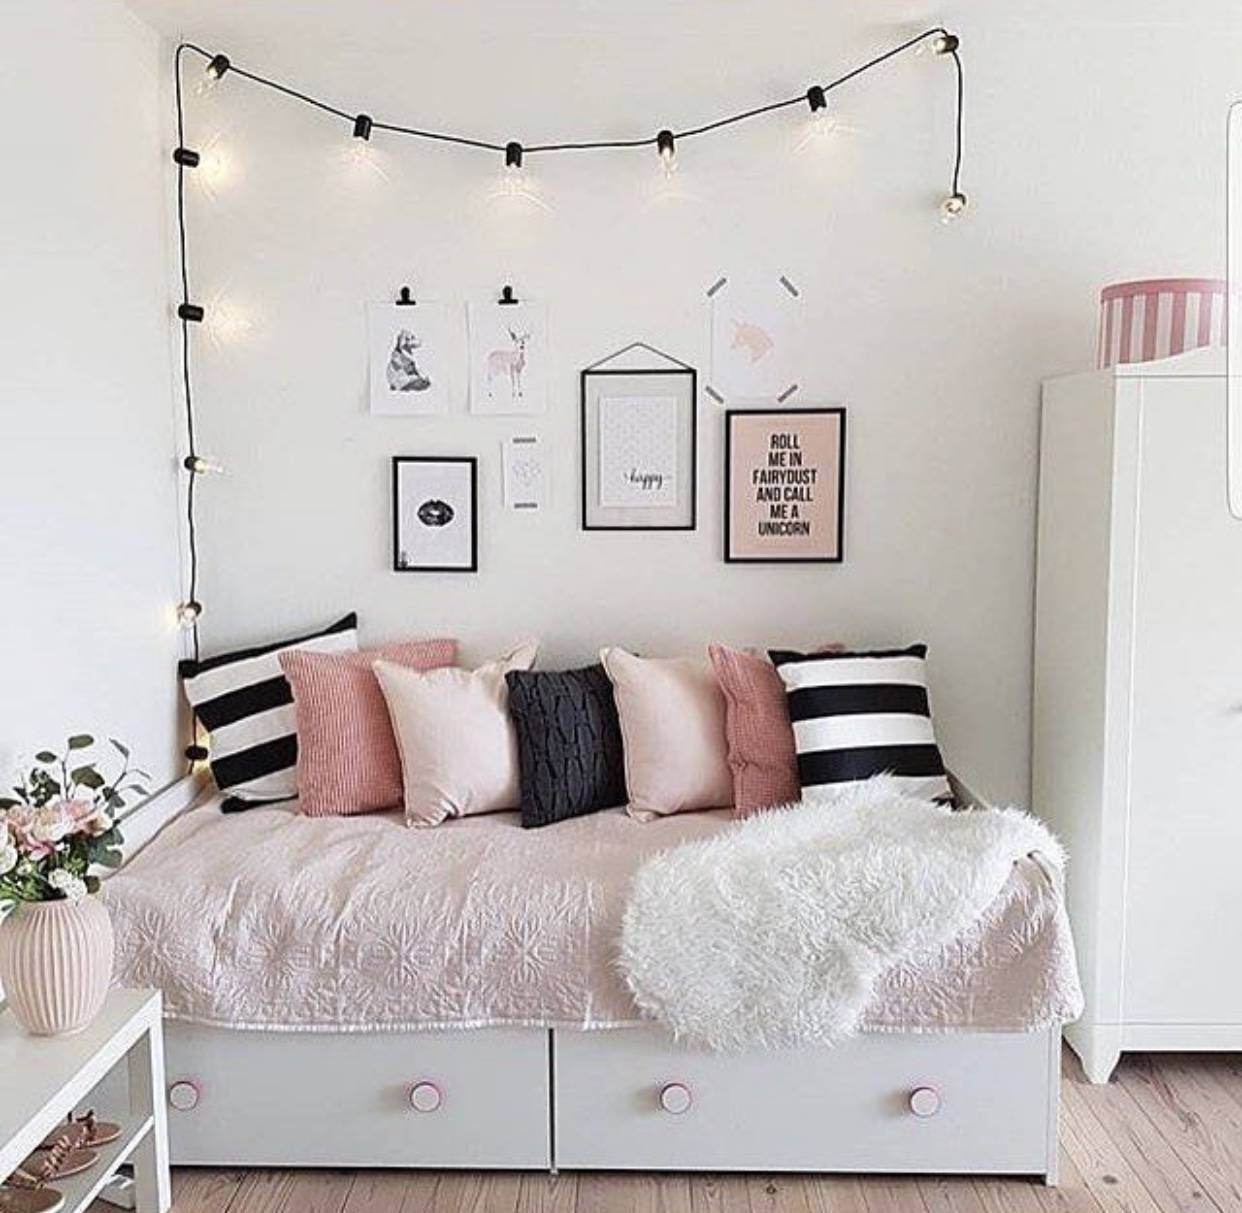 Vsco Room Ideas How To Create A Cute Vsco Room Cute Bedroom